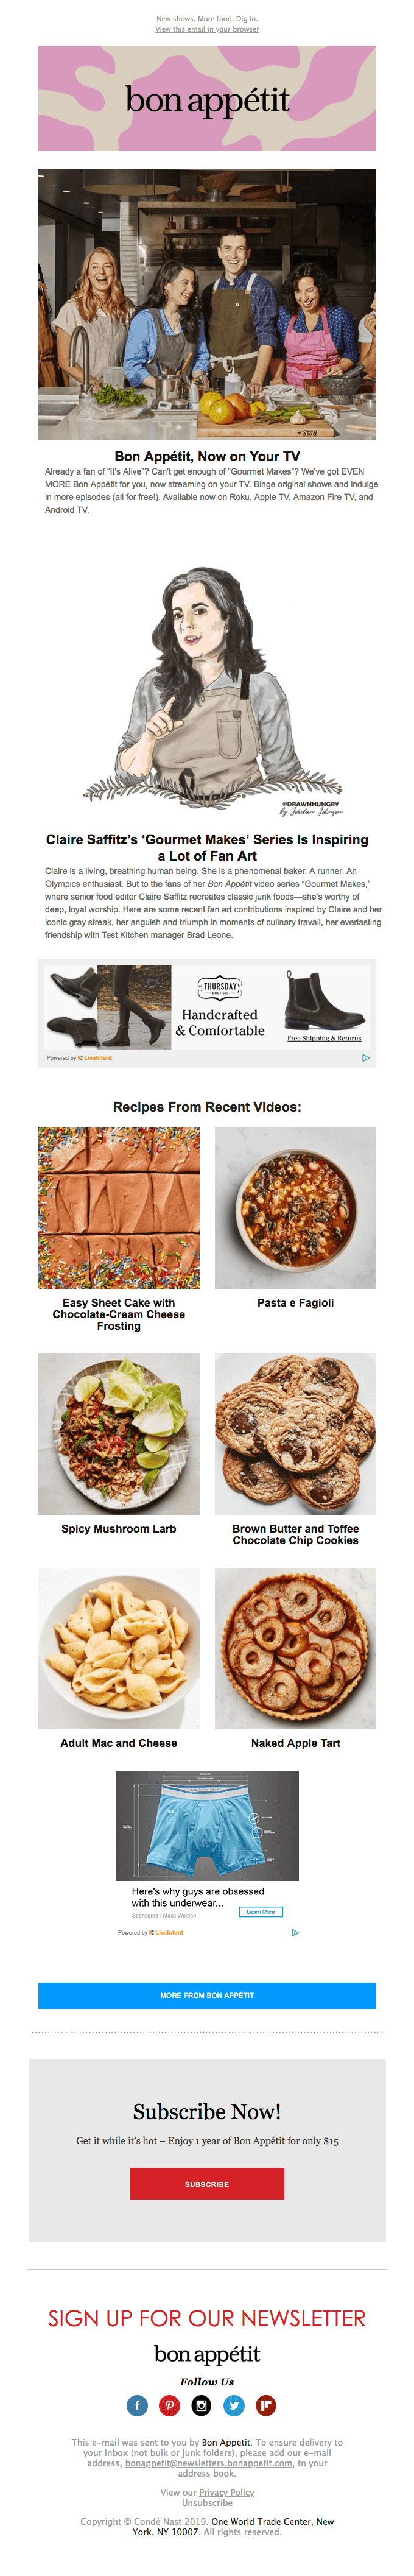 bon appetit spices up their emails to inspire